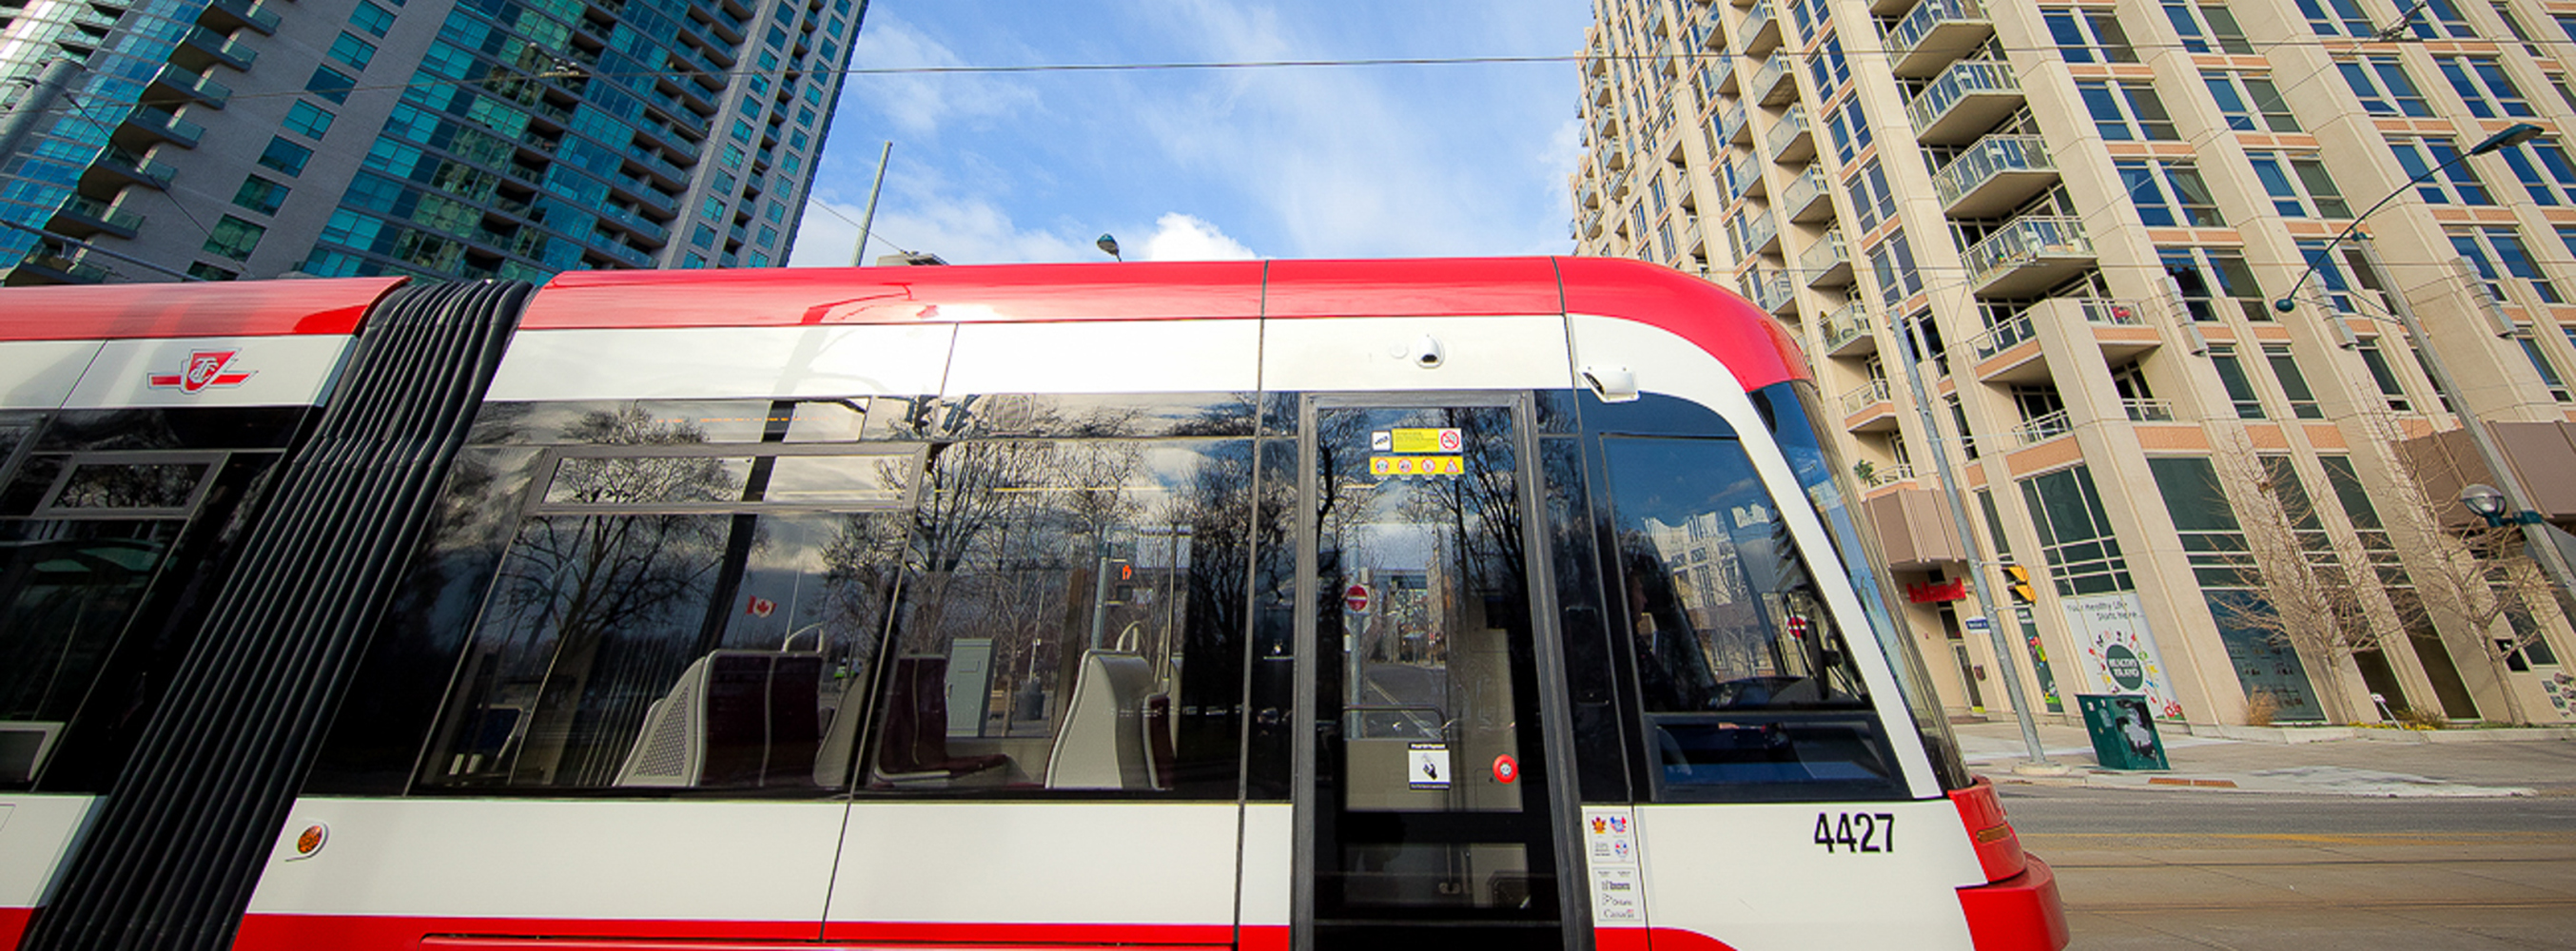 streetcar travelling pass two buildings